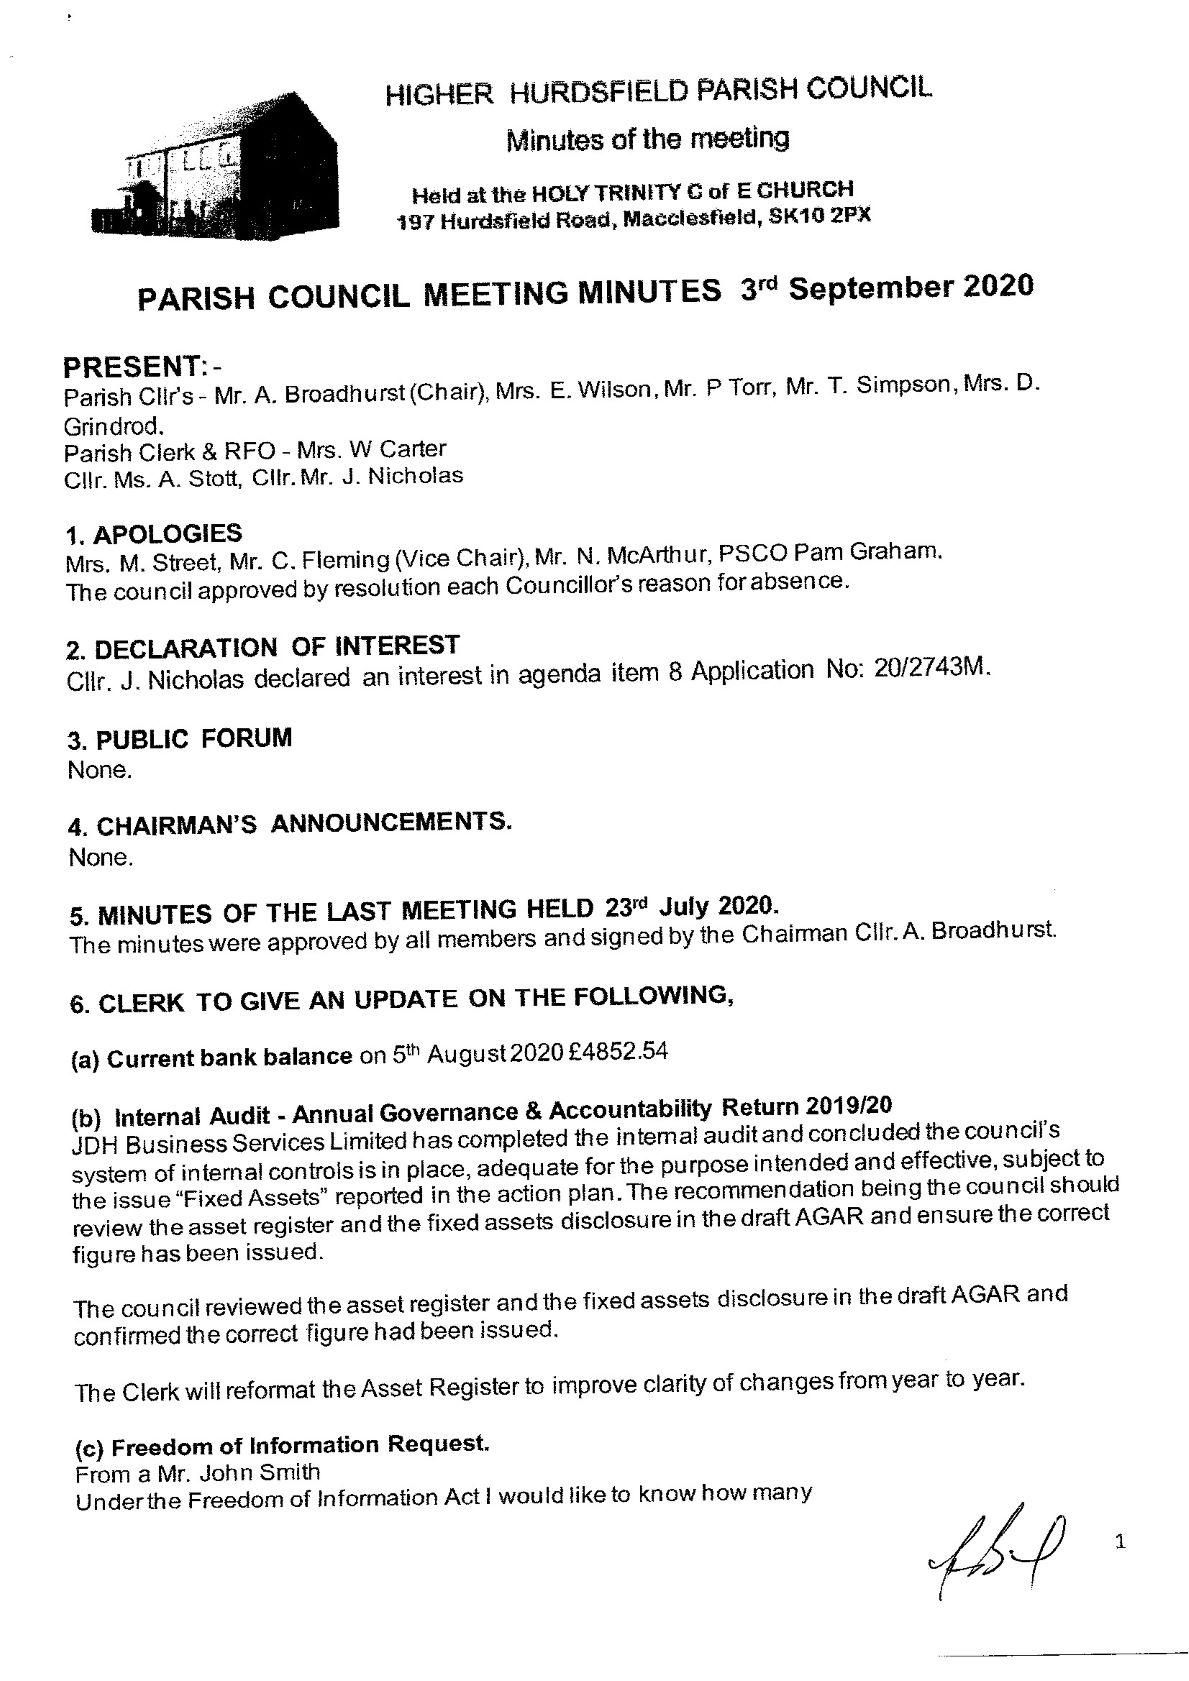 Approved Minutes of Meeting 3rd Sept. 2020. 1 of 4